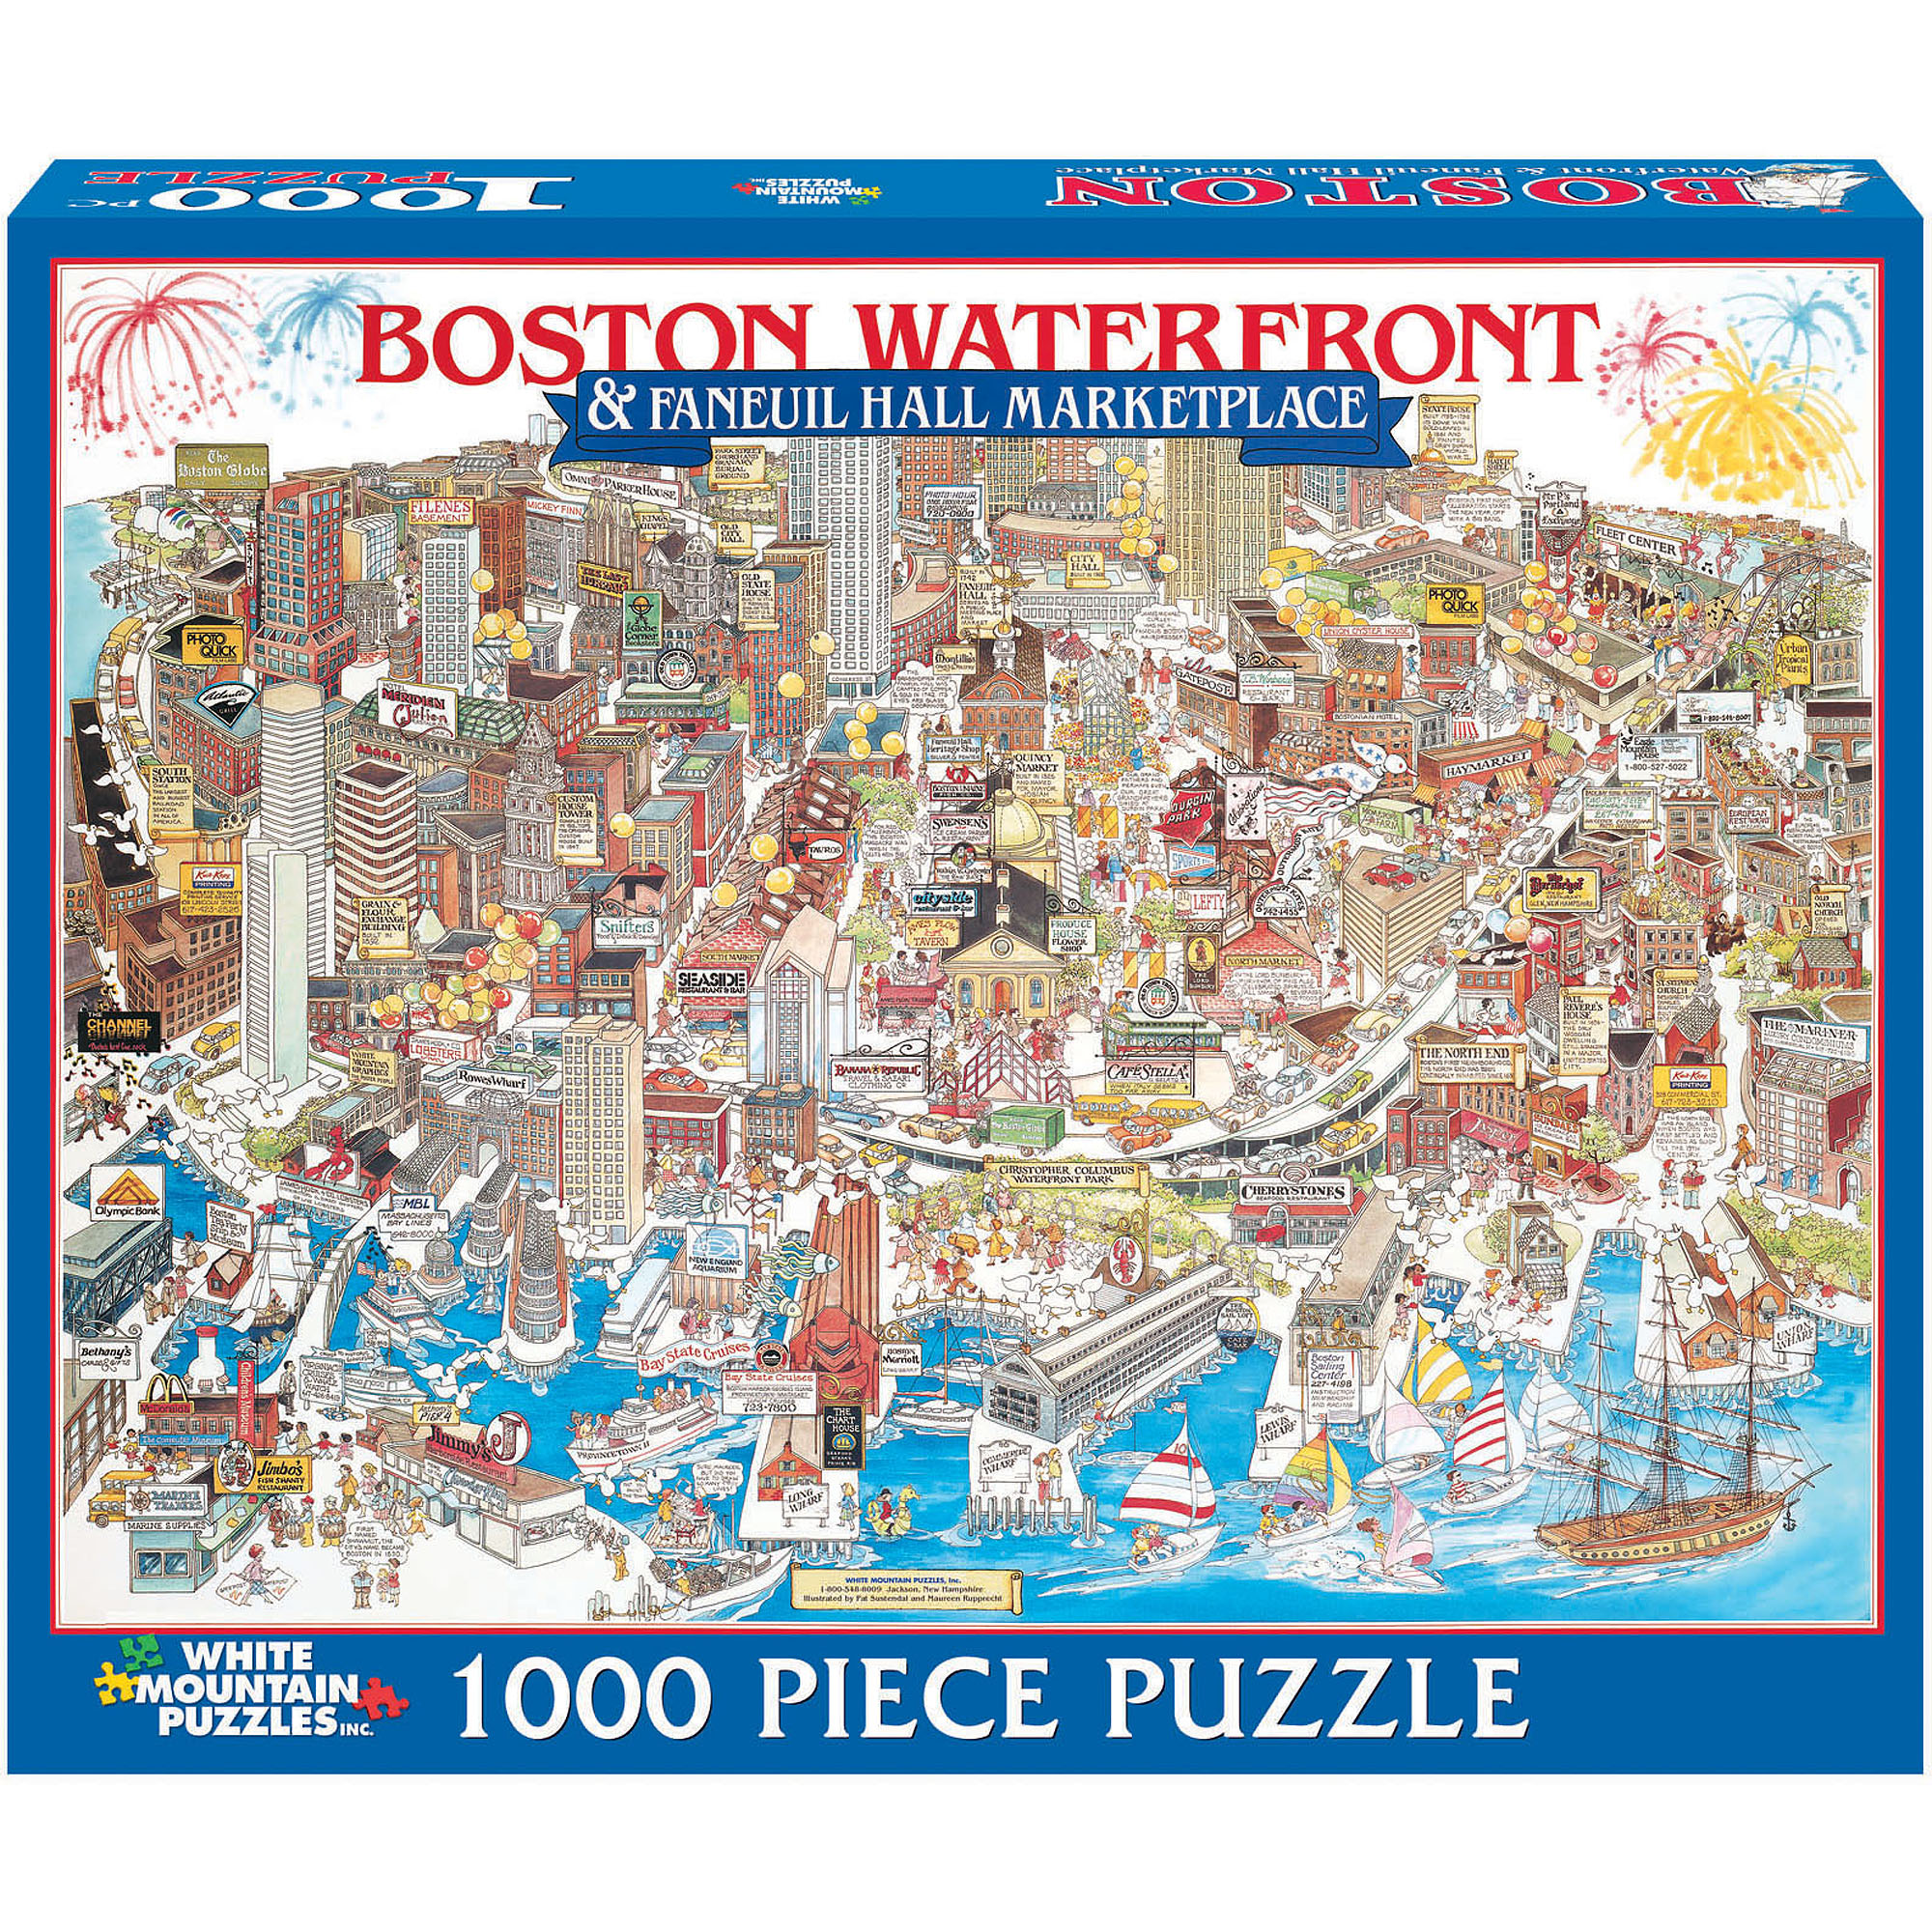 White Mountain Puzzles Boston Waterfront, MA Puzzle, 1000 Pieces